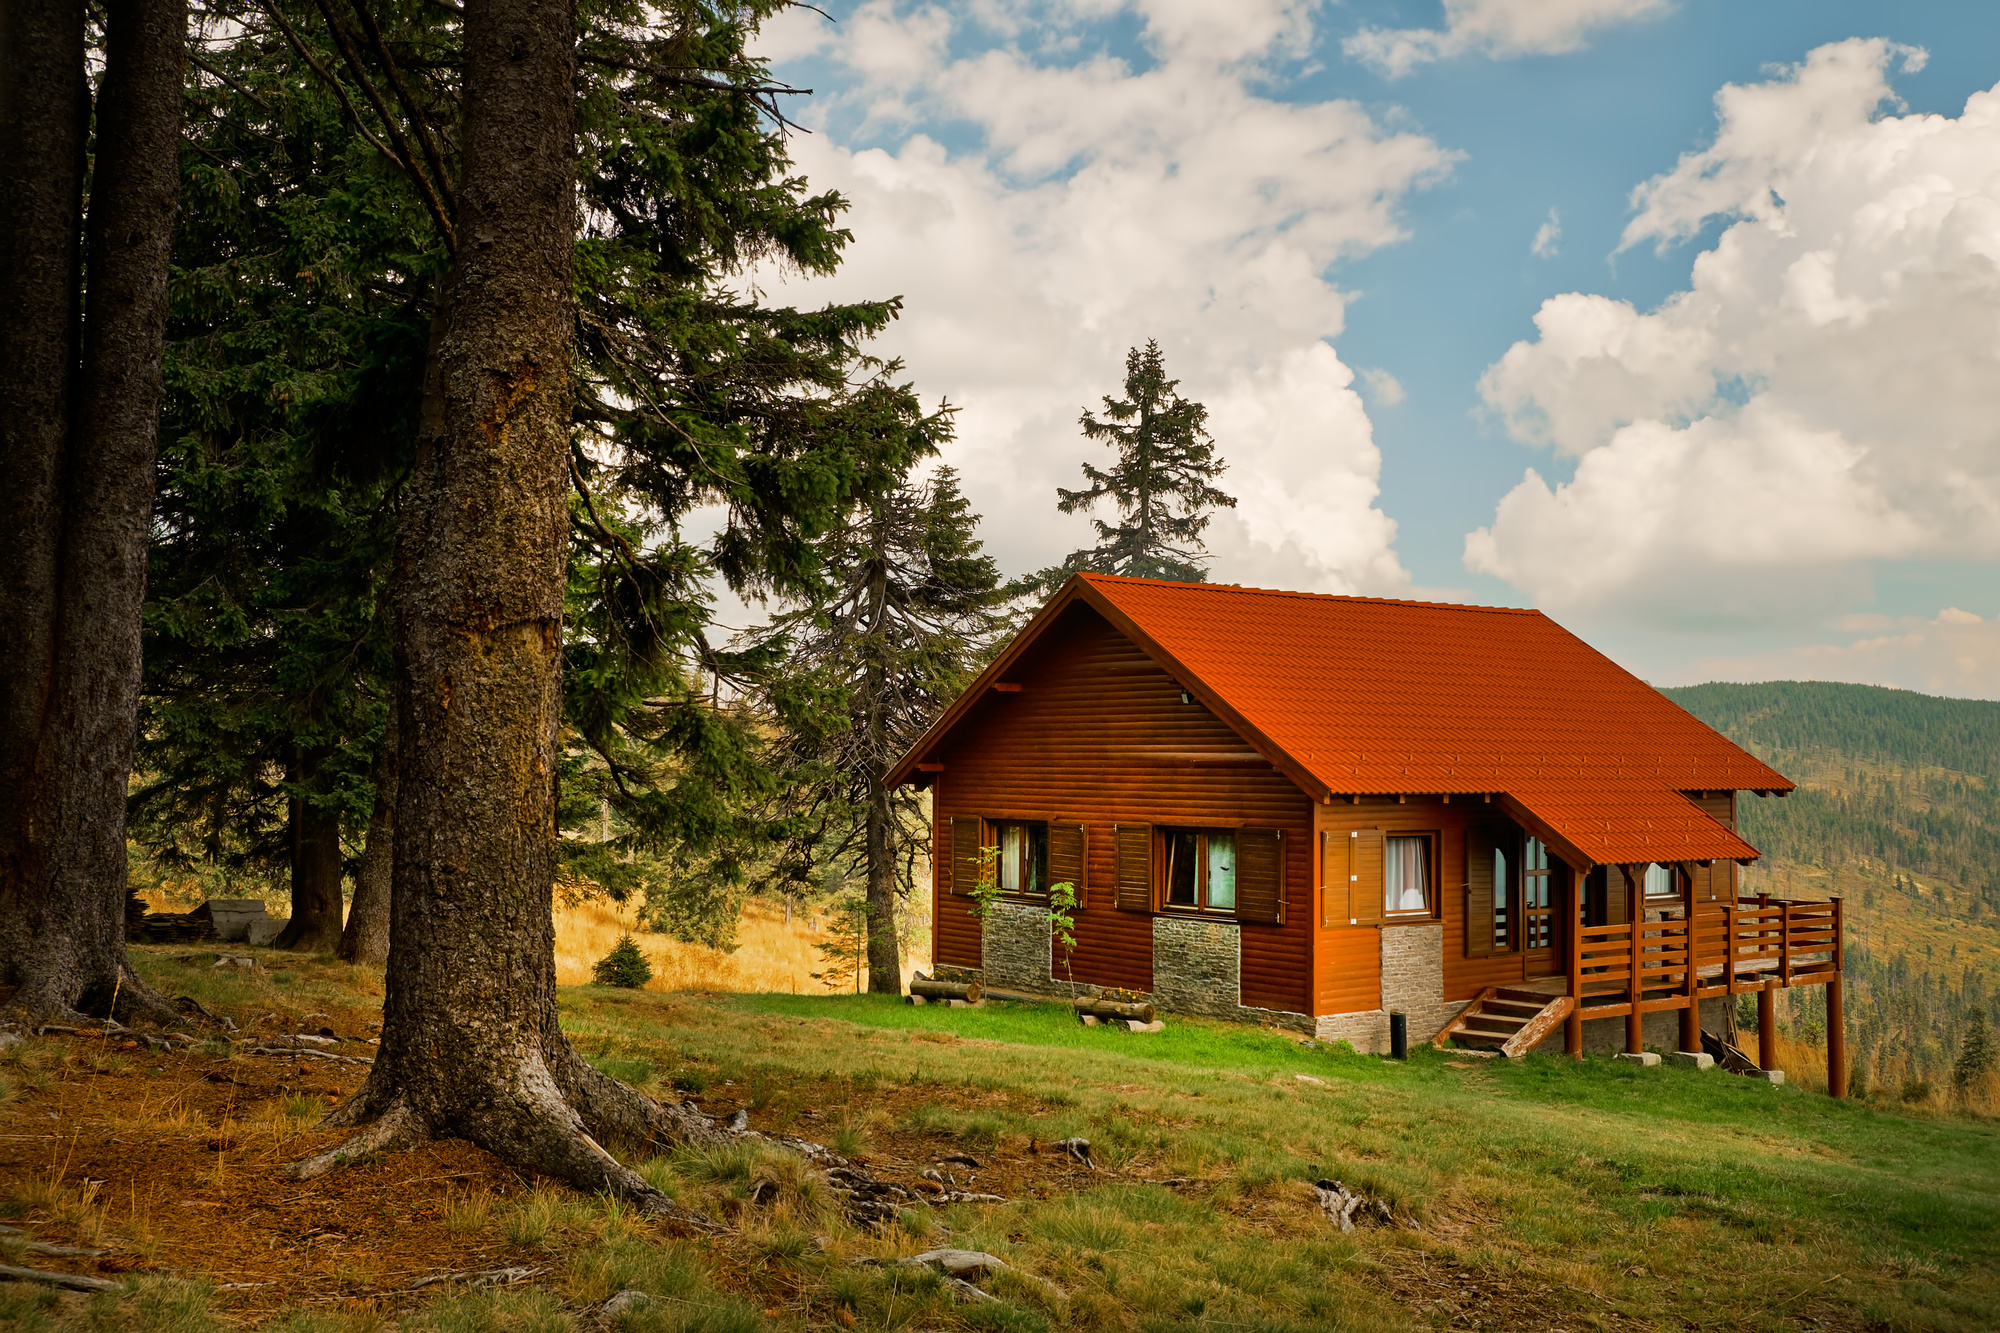 7 Benefits Of Smoky Mountain Cabin Rentals Compared To Hotels